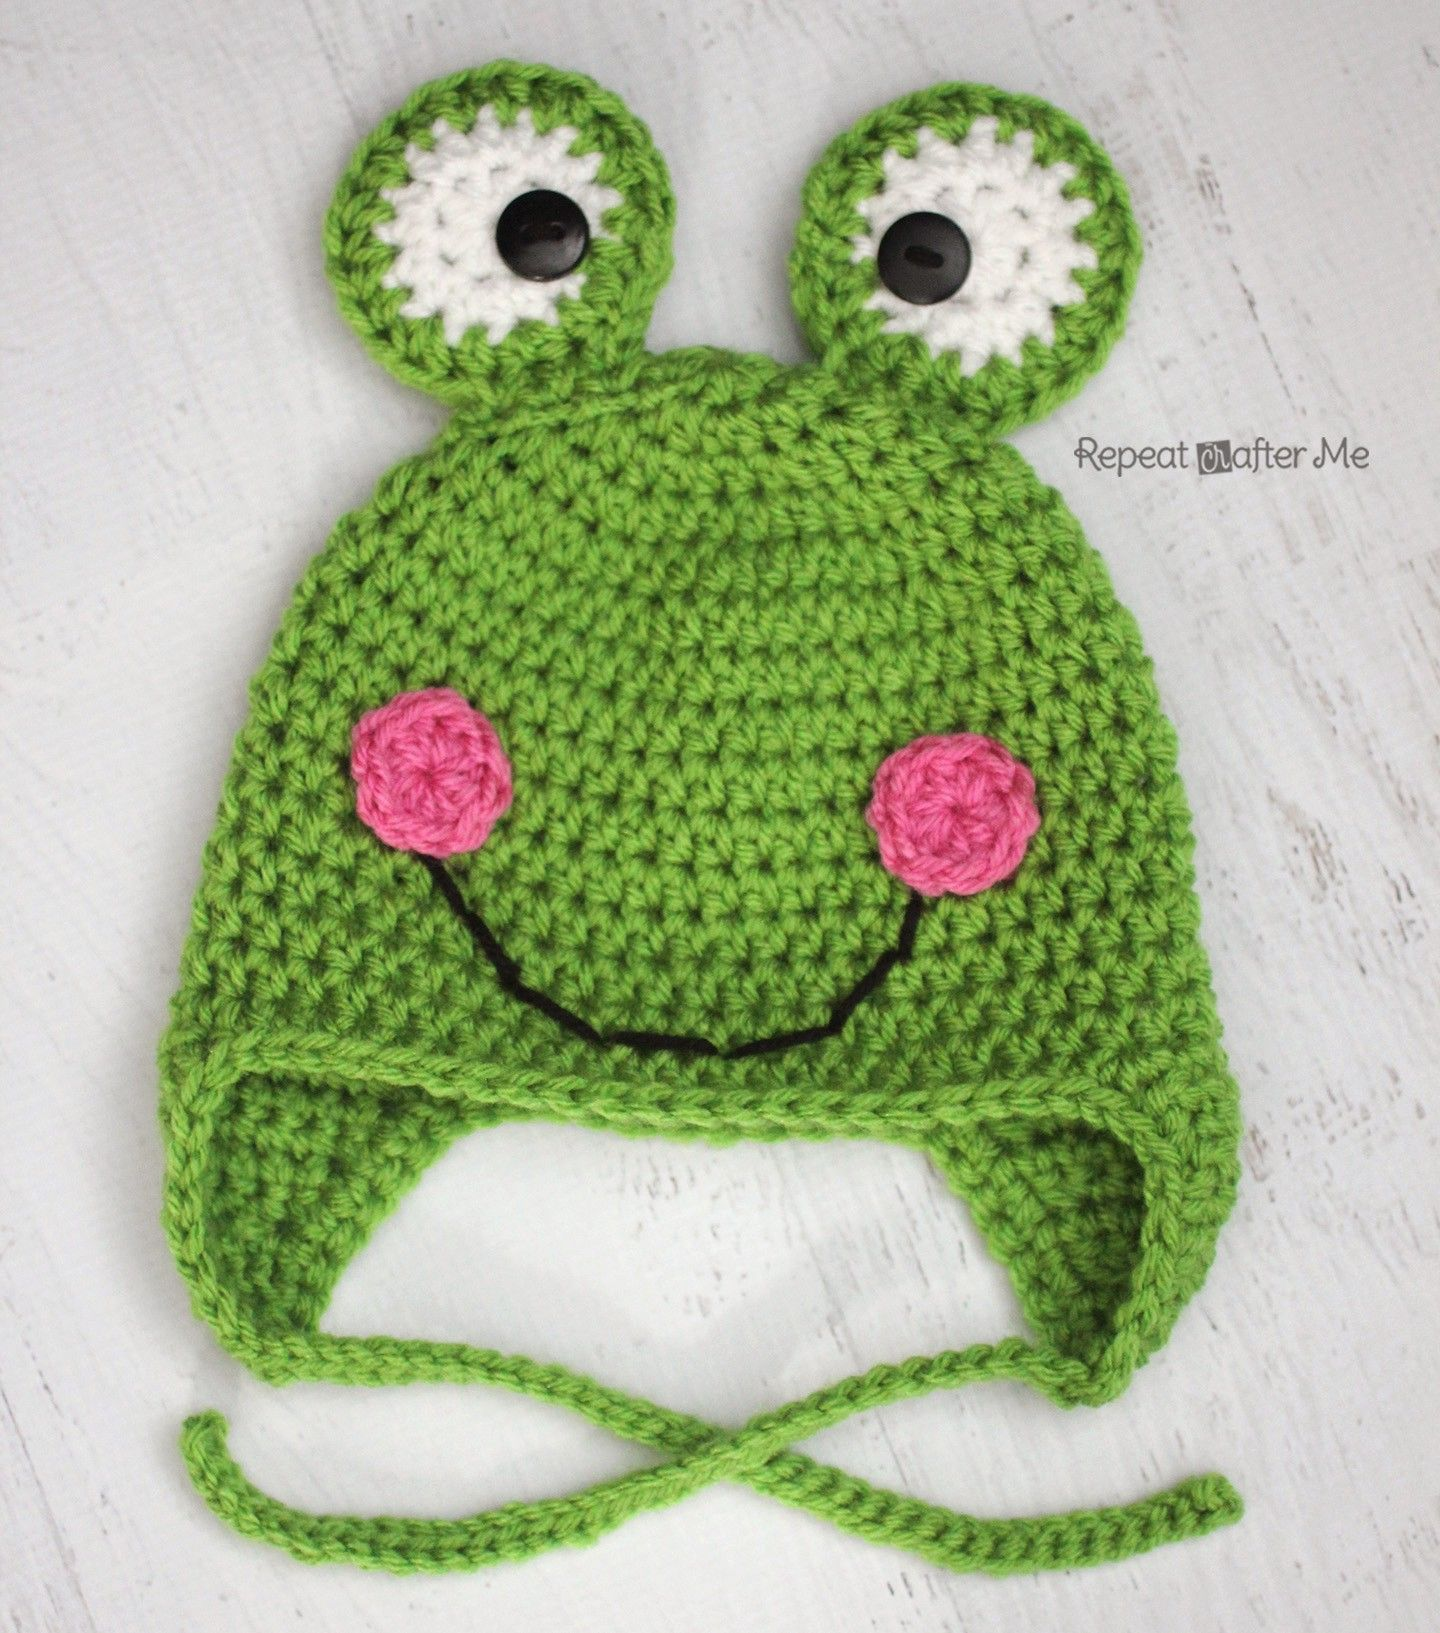 Crochet frog hat pattern repeat crafter me crochet frog crochet frog hat pattern bankloansurffo Image collections